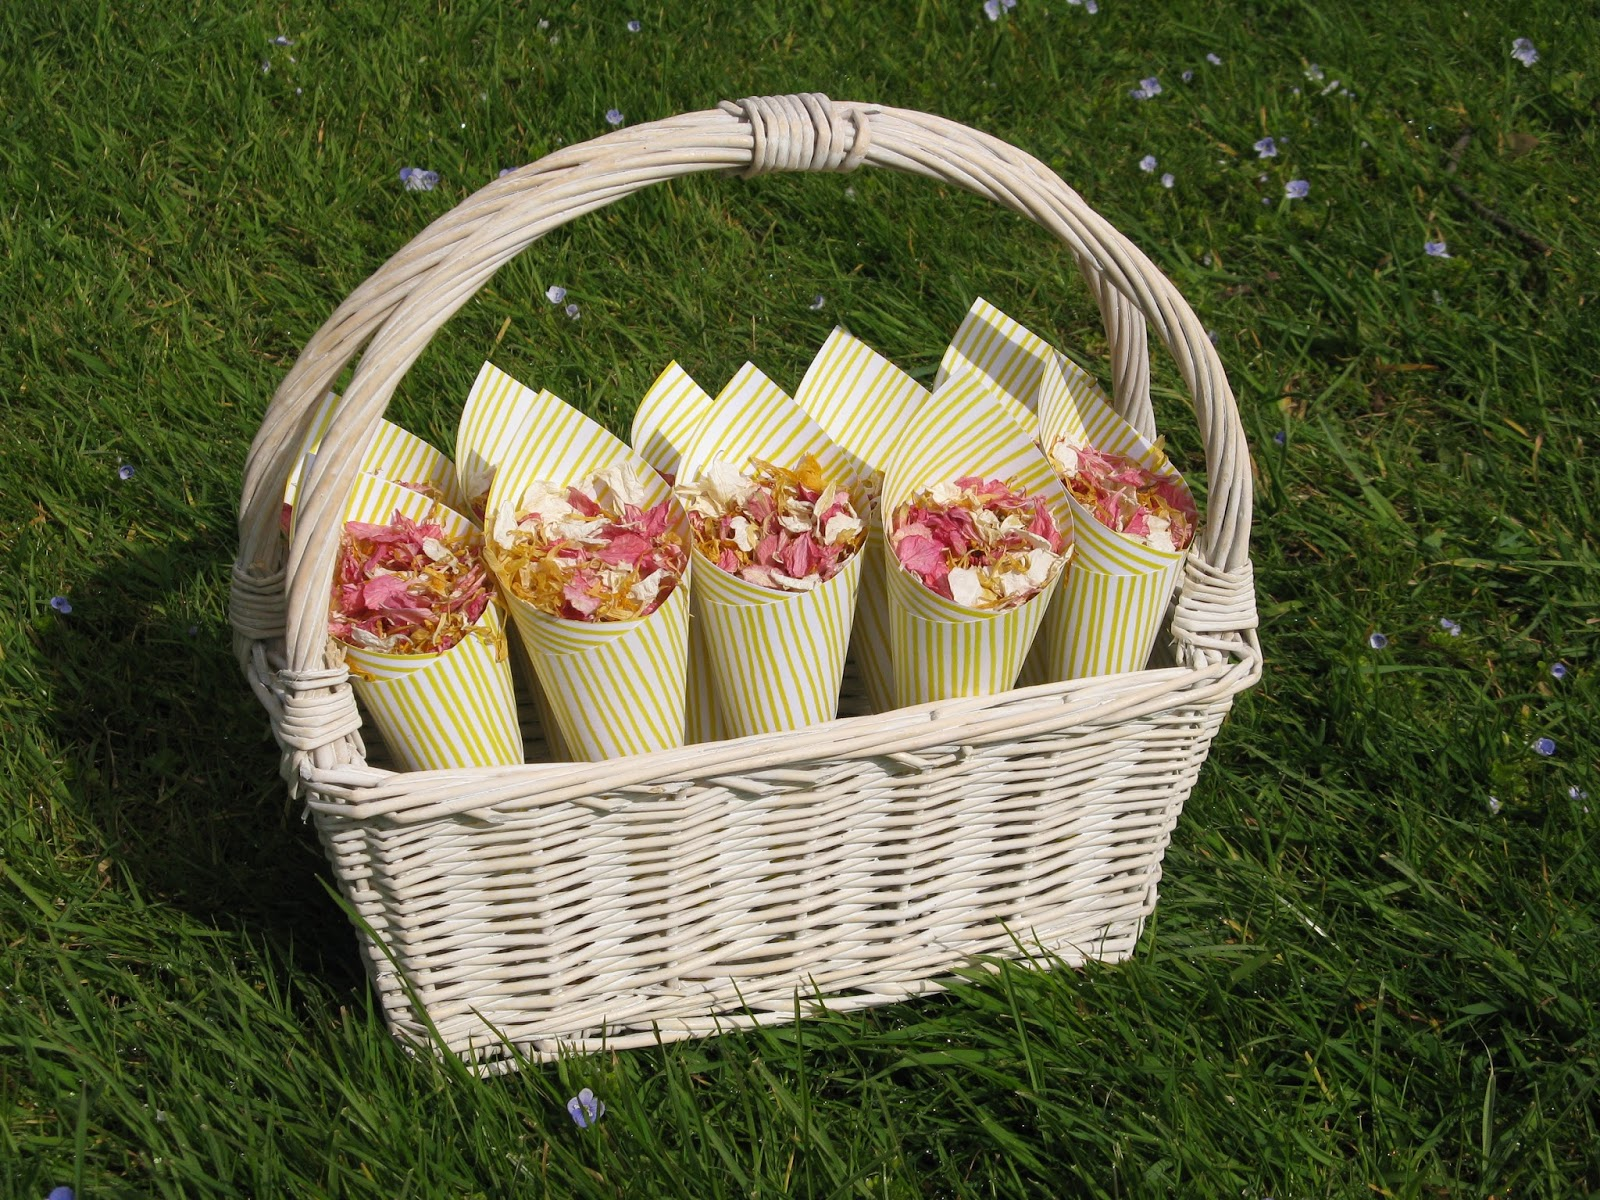 Wedding Baskets For Flower Petals : The confetti super summery sunshine wedding